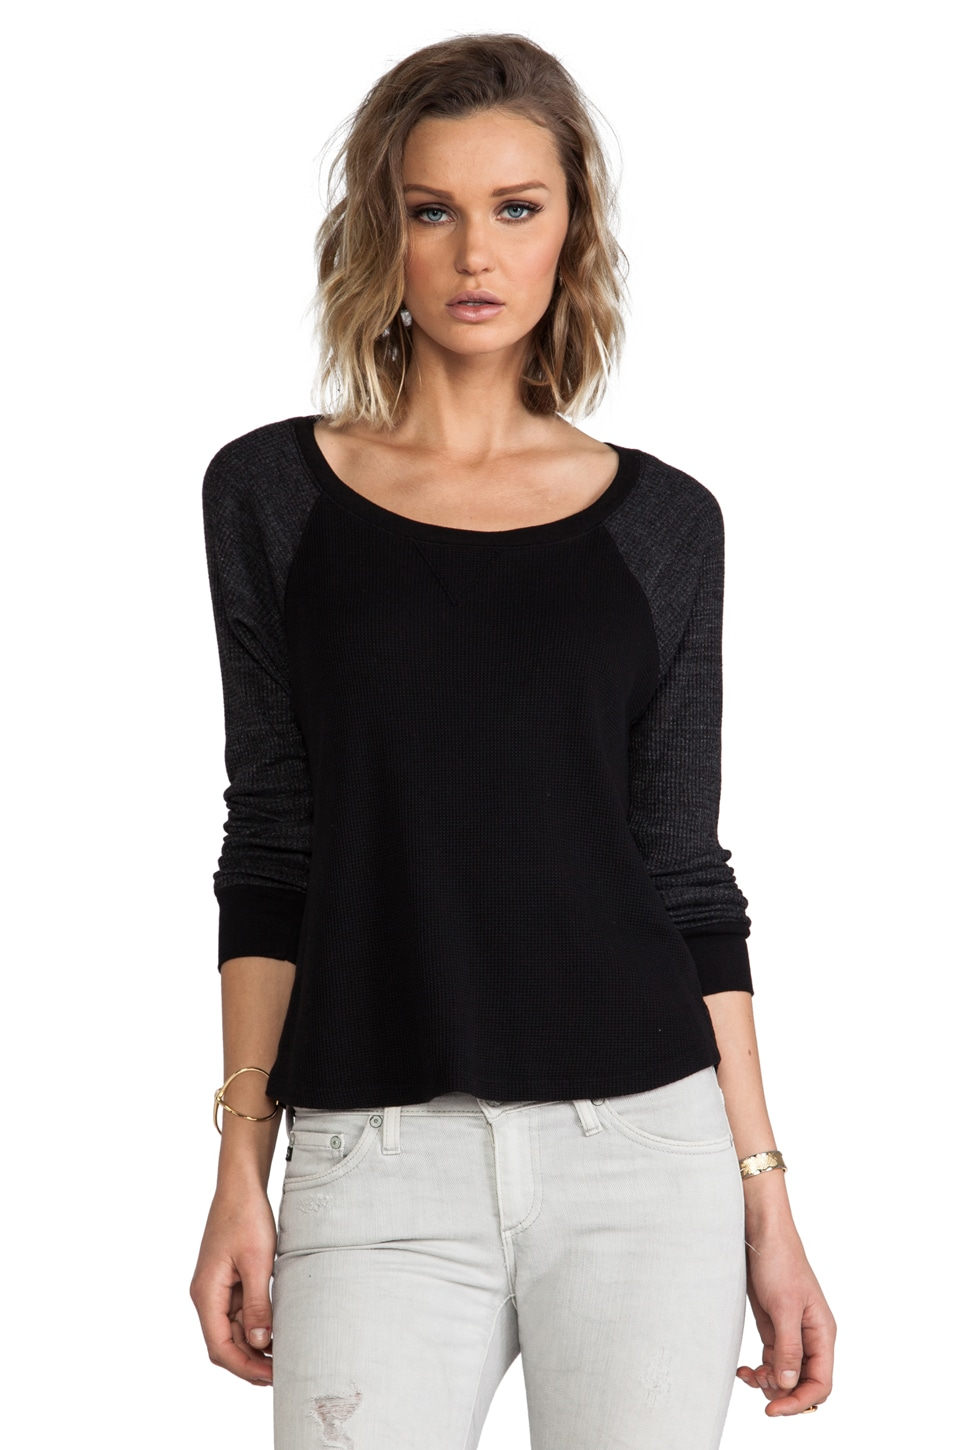 Splendid Thermal Long Sleeve Pullover in Black